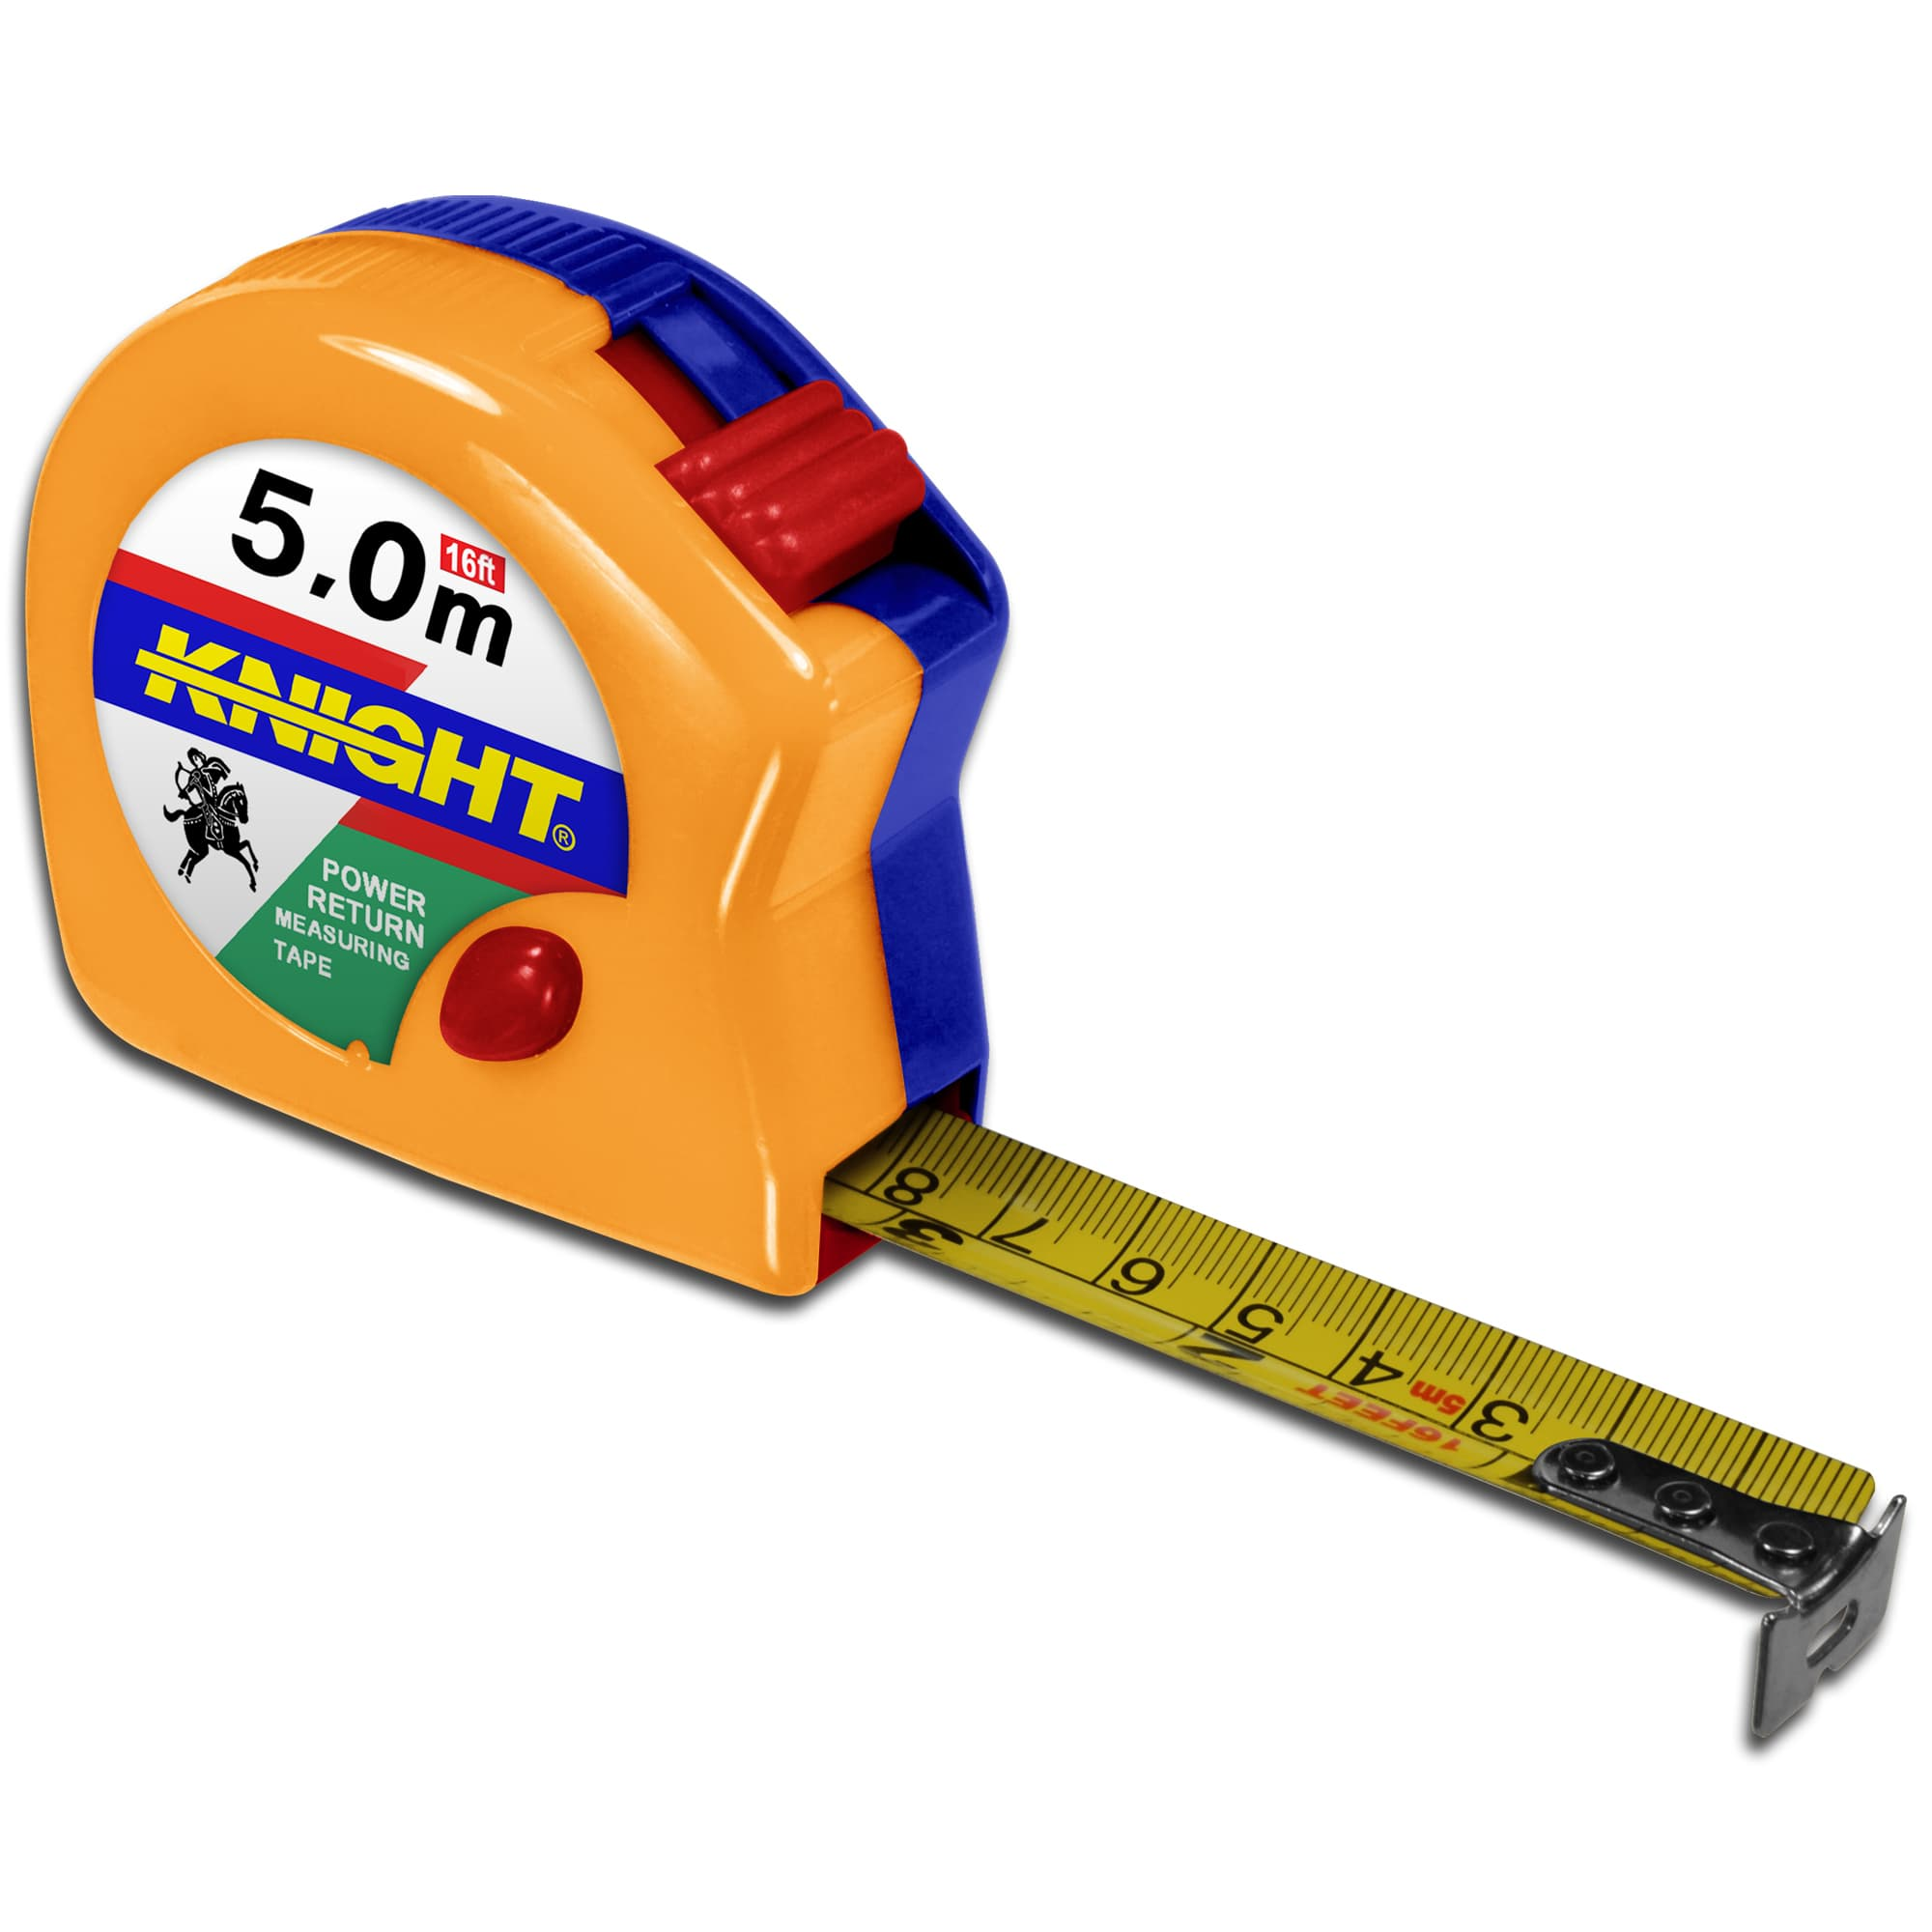 Master Carpenter Inch Metric Tape Measure